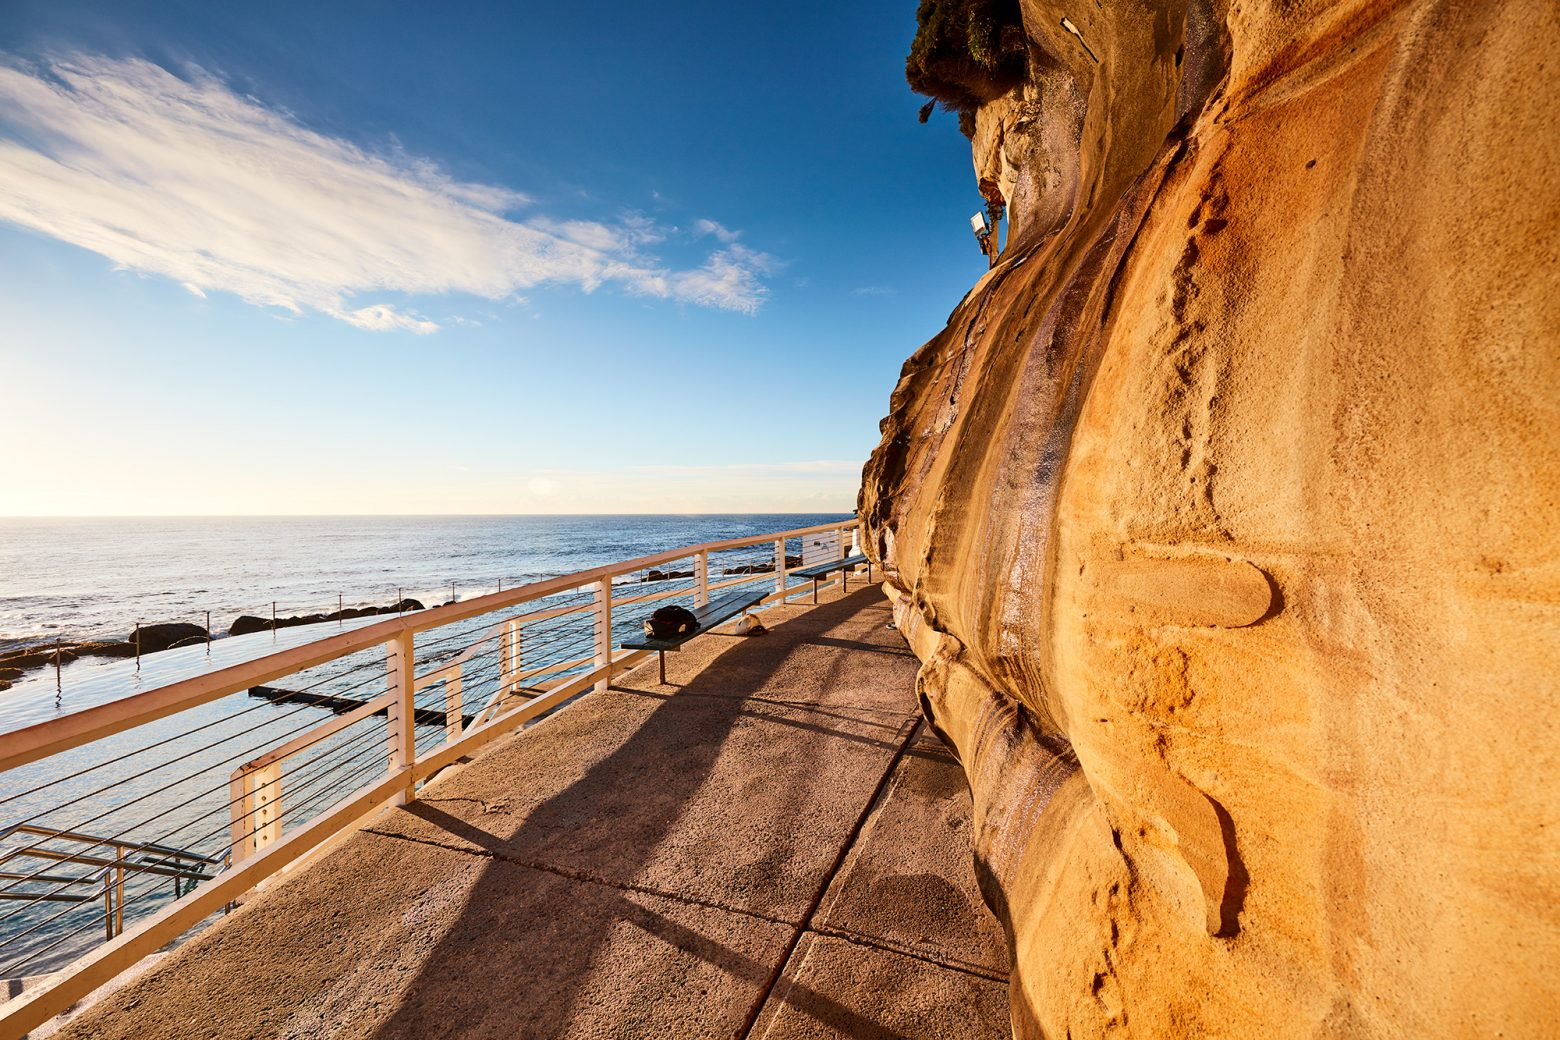 The warms hues bounced off sandstone at Bronte